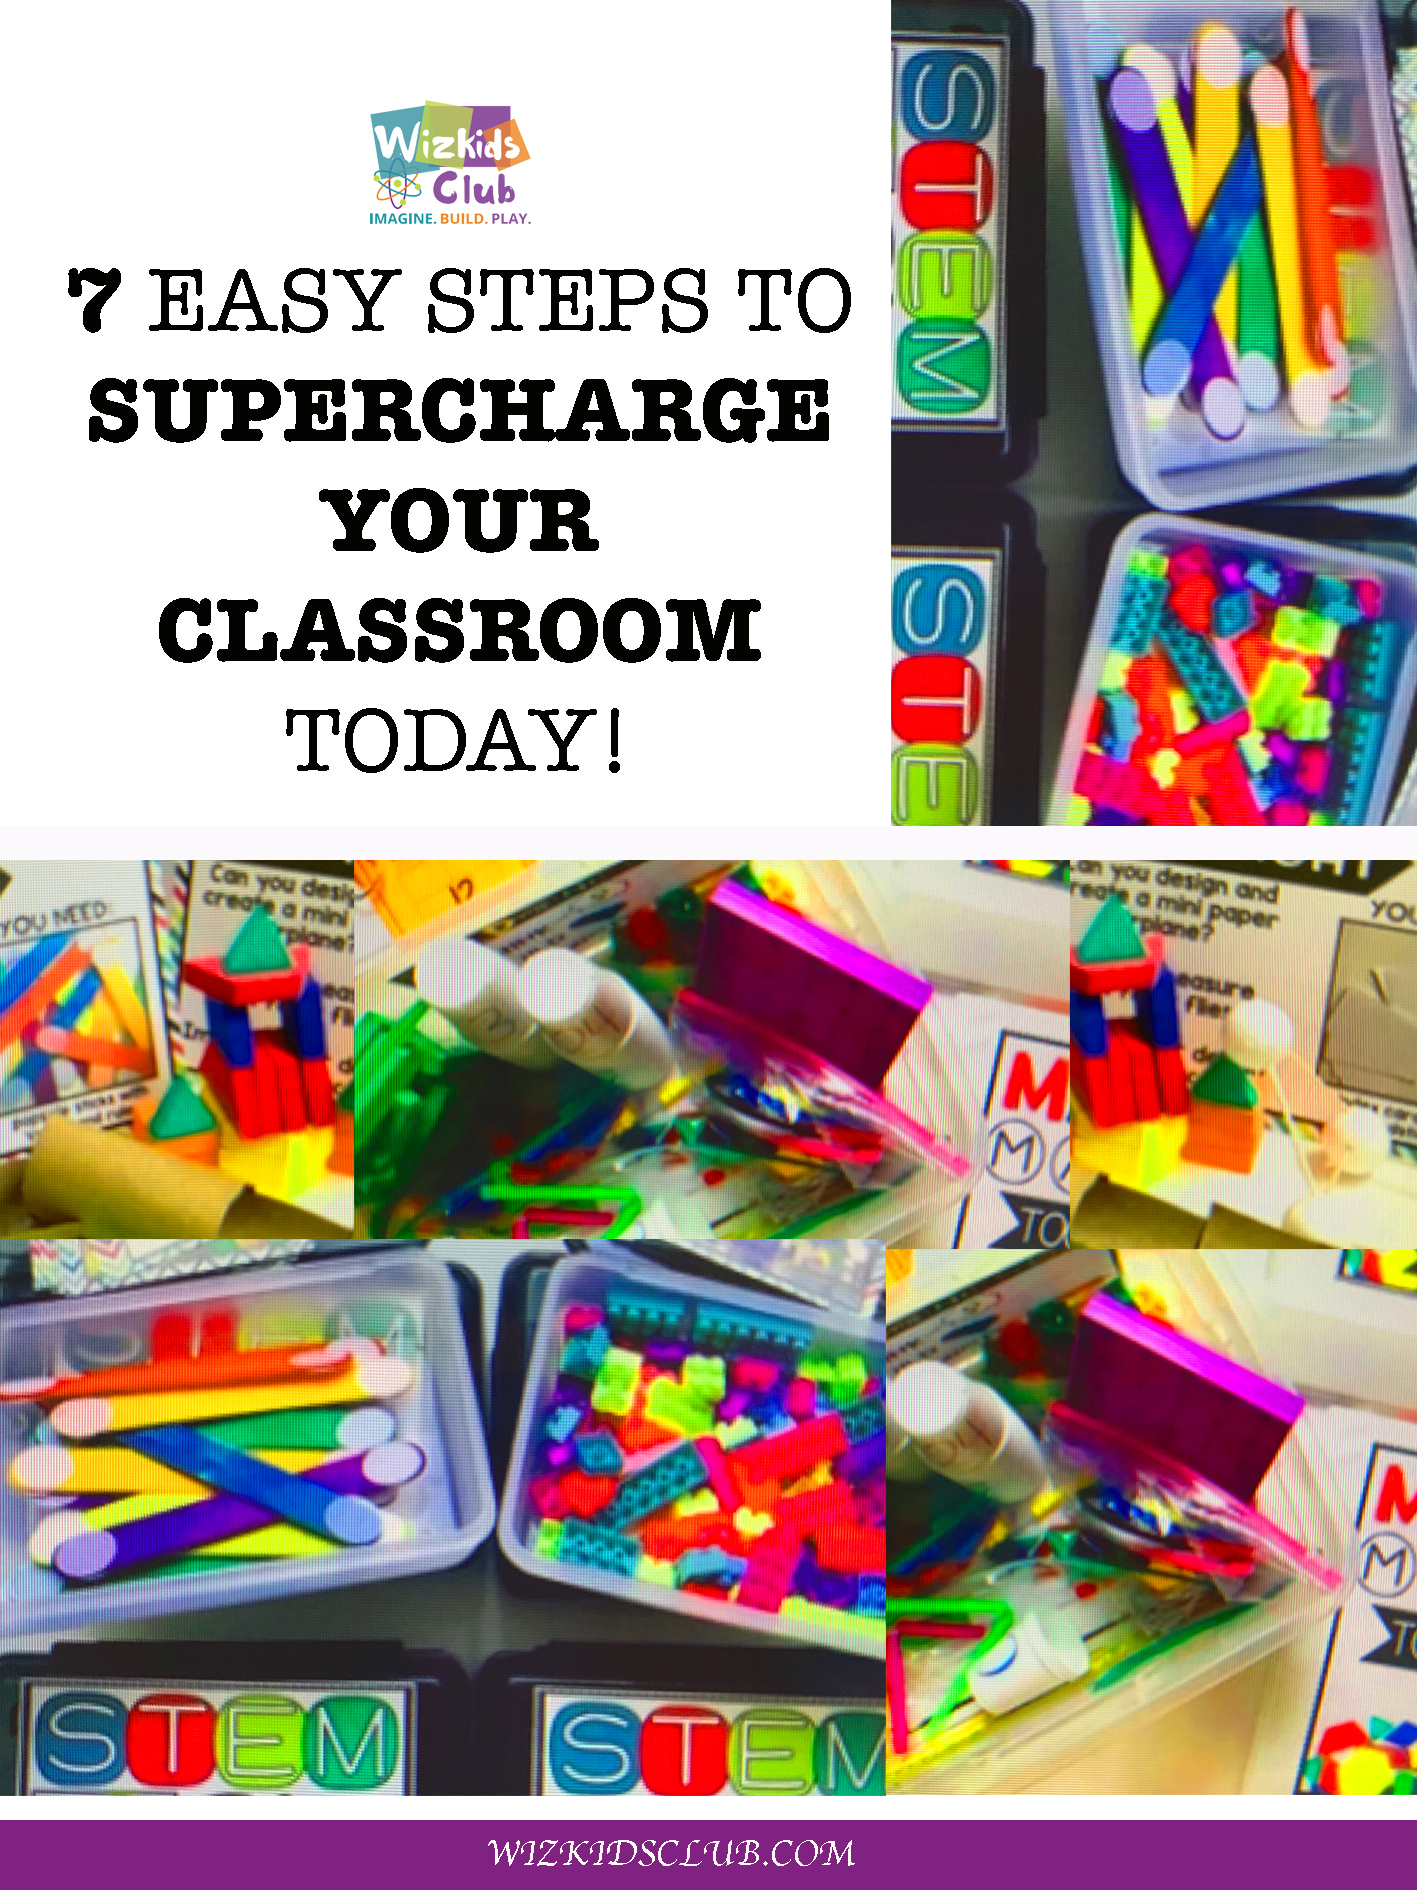 Best Ways to SUPERCHARGE YOUR CLASSROOM